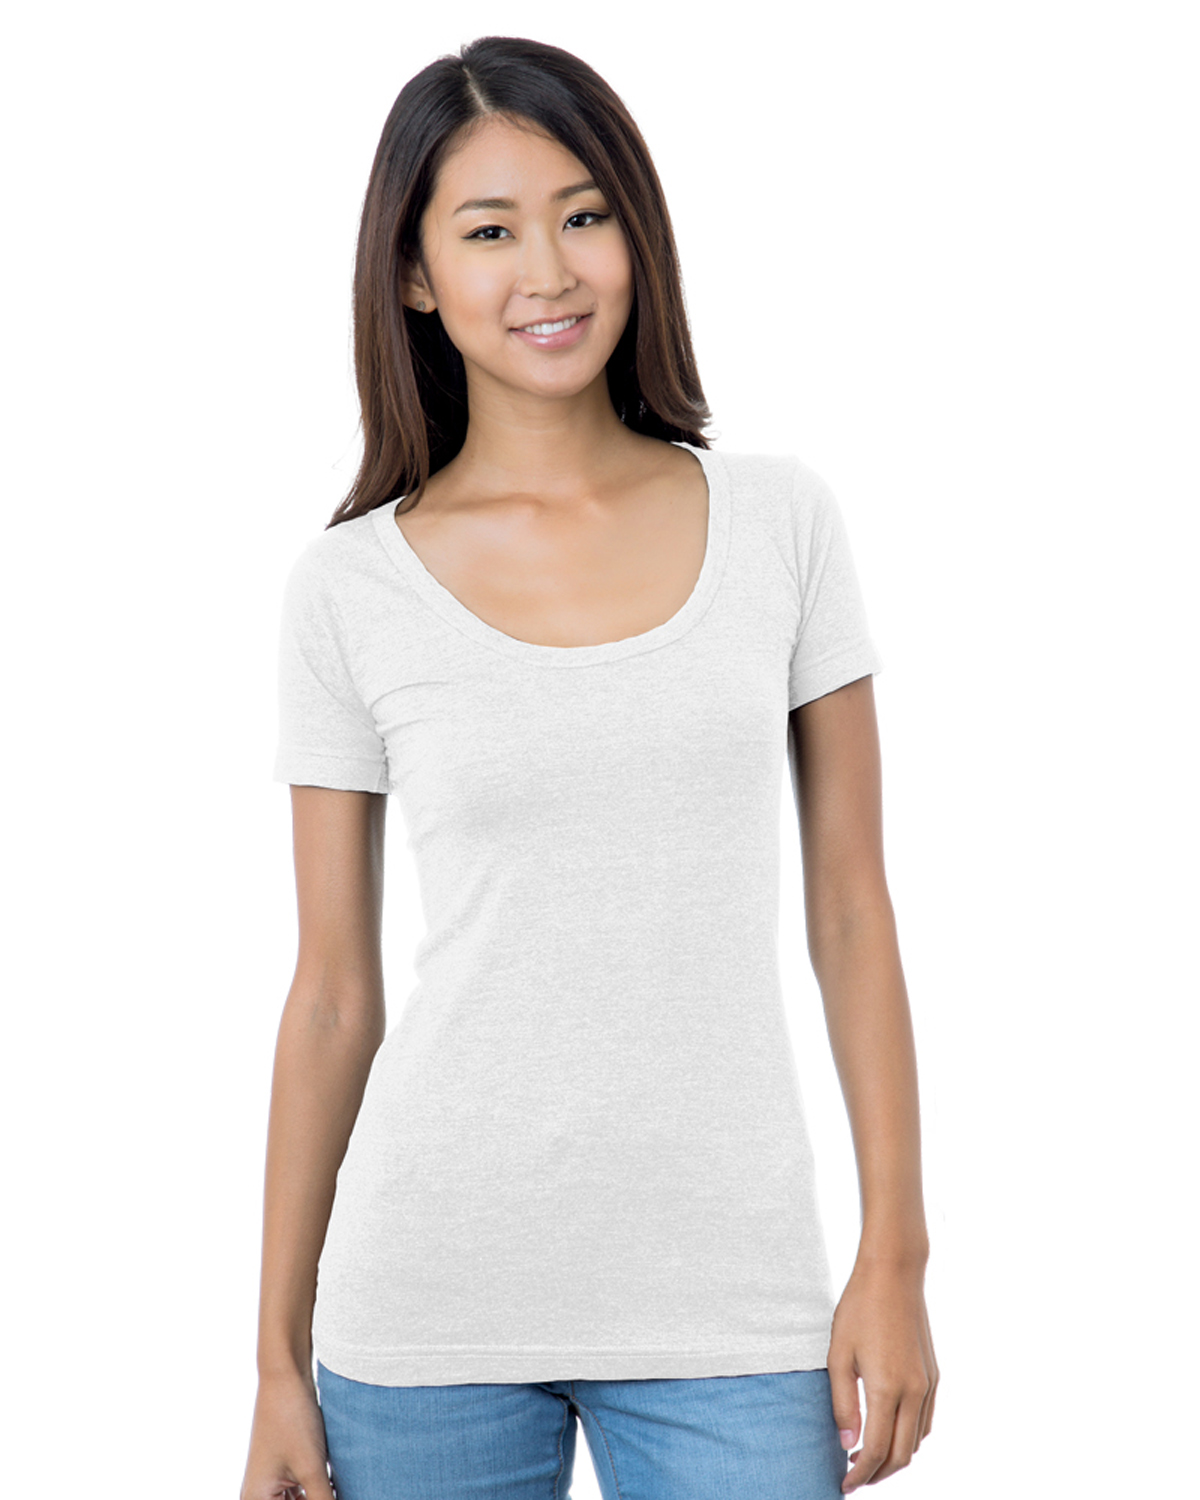 Women's 4.2 oz., Fine Jersey Wide Scoop Neck T-Shirt